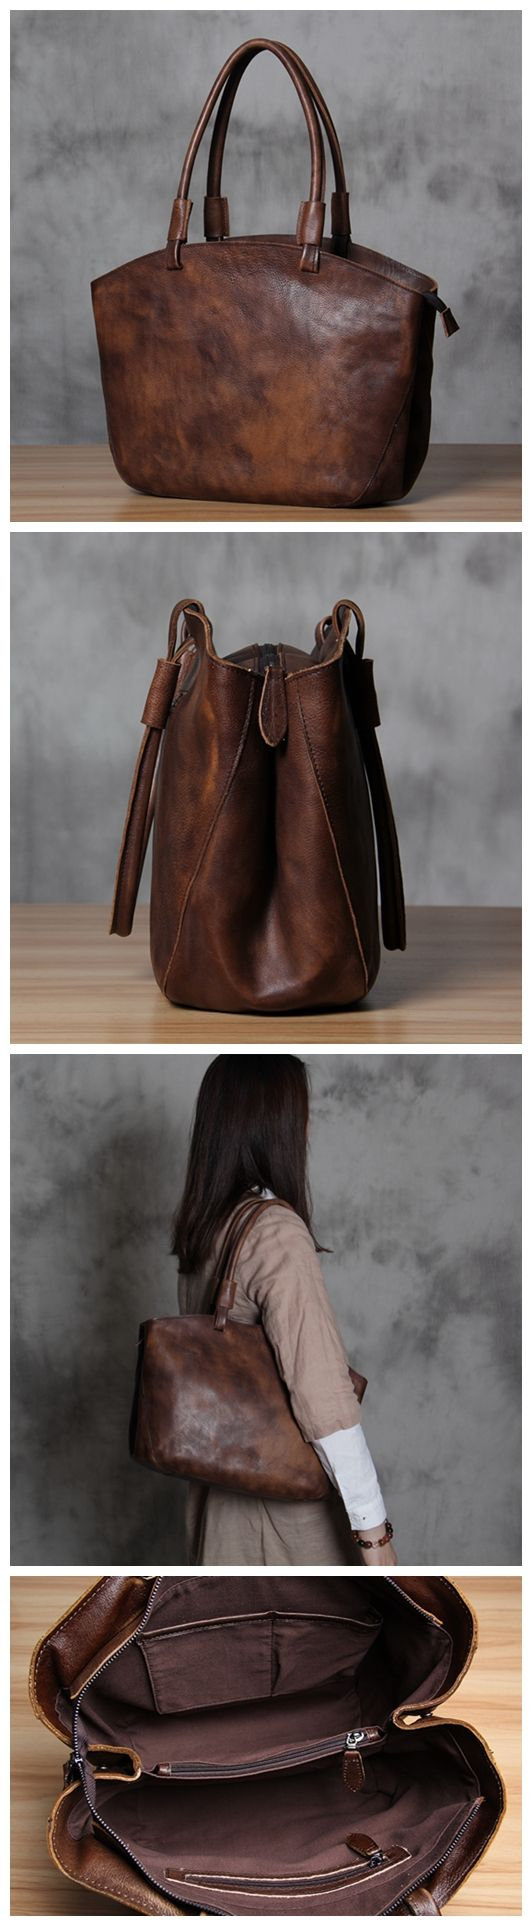 Women's Fashion Handmade Leather Tote Bag Handbag Small Satchel Purse WF02 Overview: Design: Vintage Vegetable Tanned Leather Tote In Stock: 4-5 days For Making Include: Only Tote Bag Custom: No Color